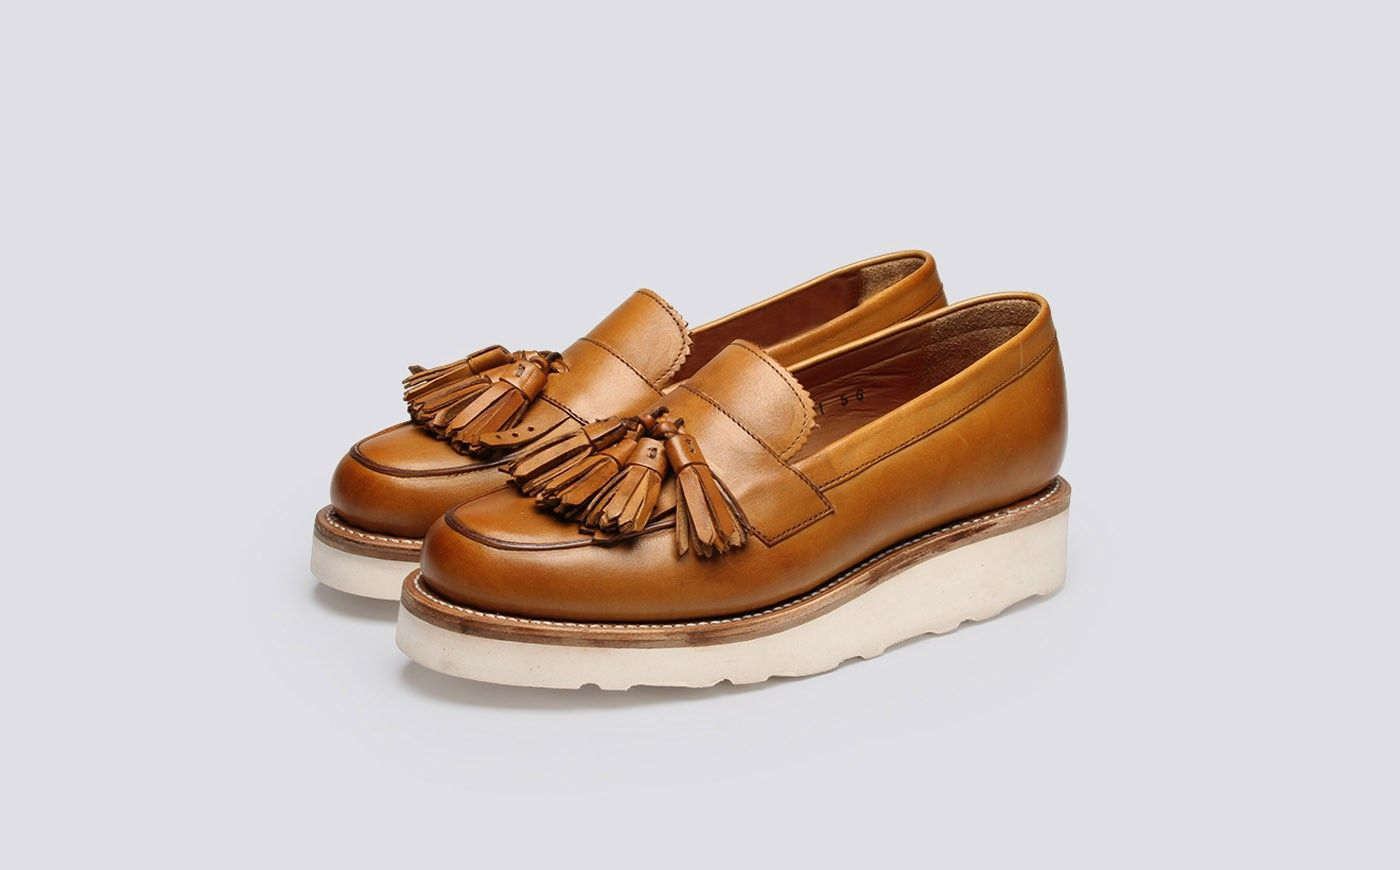 18ee002eb73 Womens Loafer in Tan Calf Leather with a White Wedge Sole